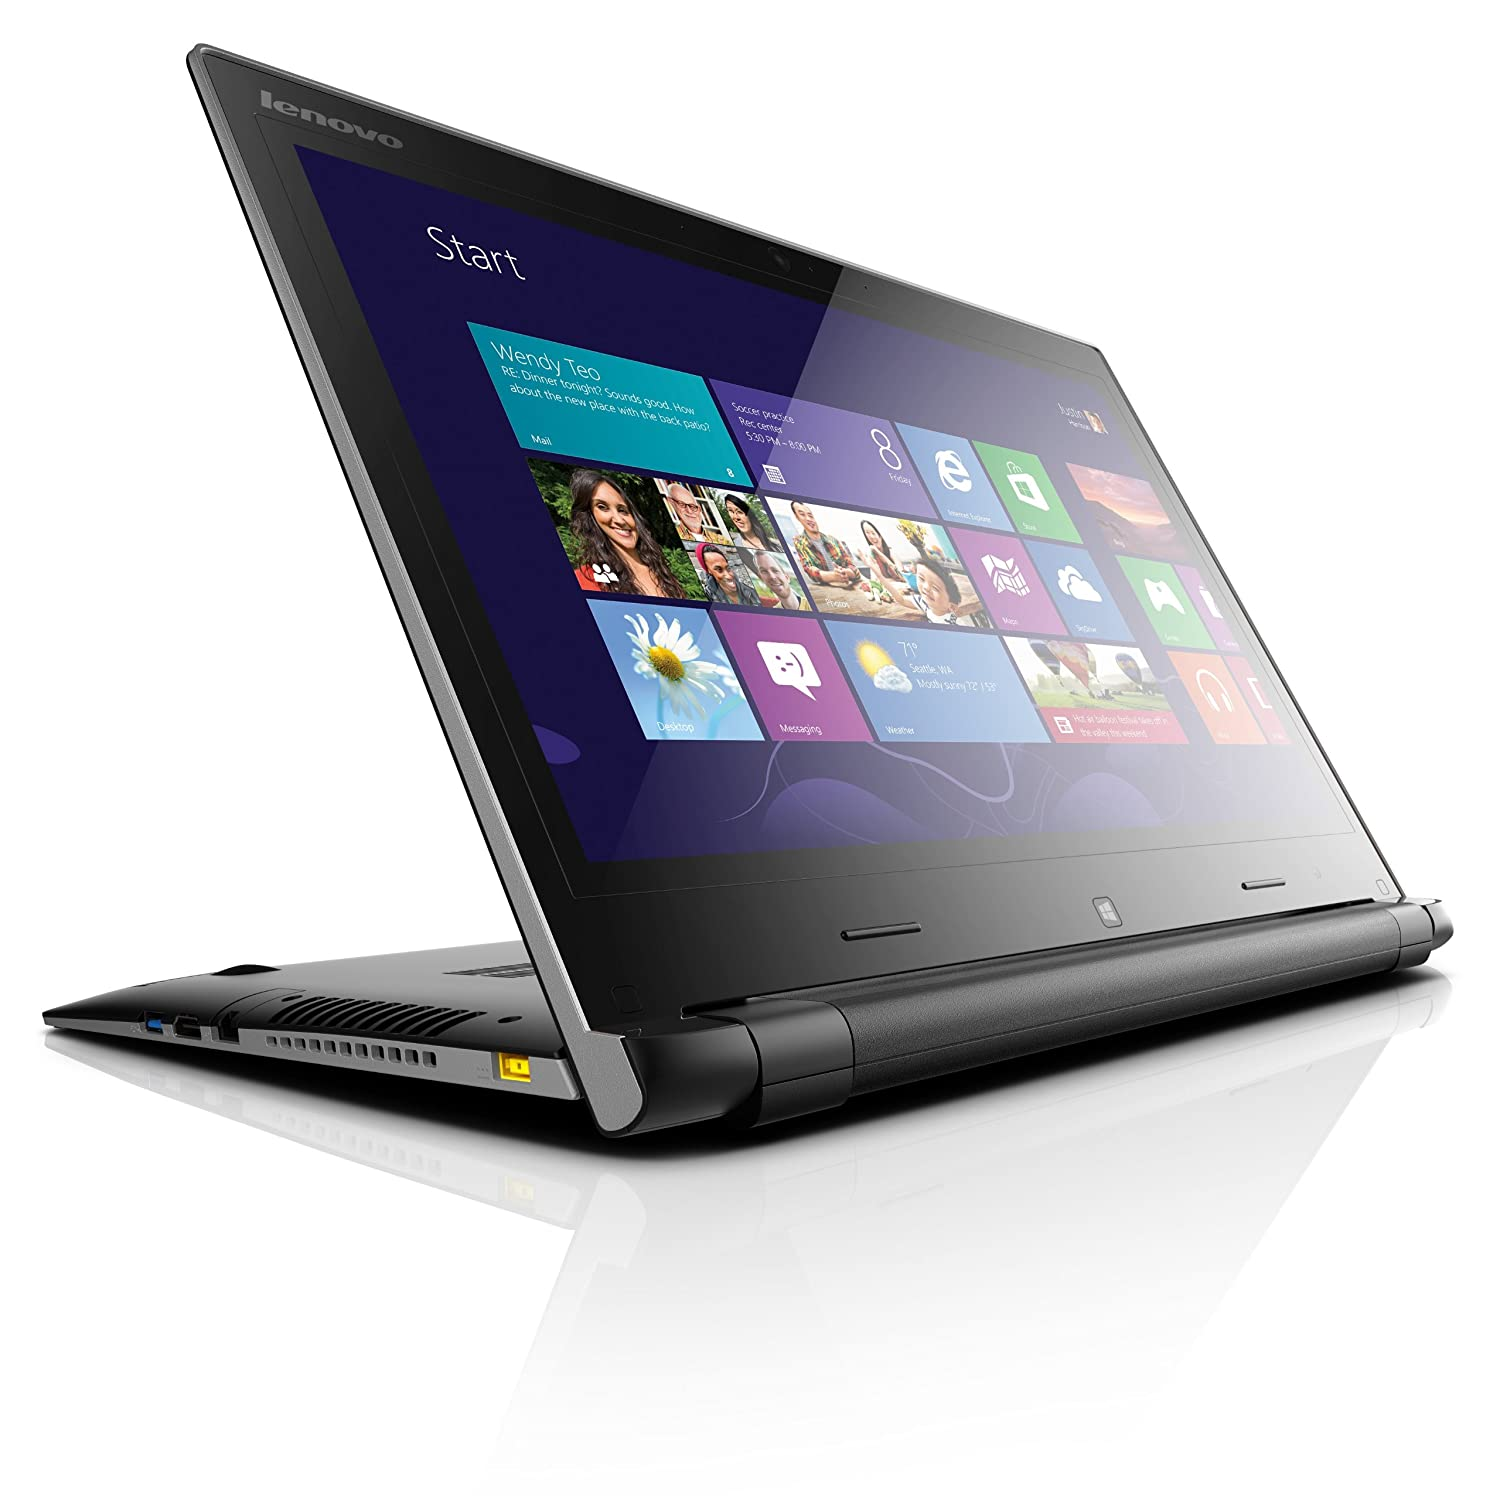 Lenovo 59406981 IdeaPad Flex 15 15.6-Inch Touchscreen Laptop Black